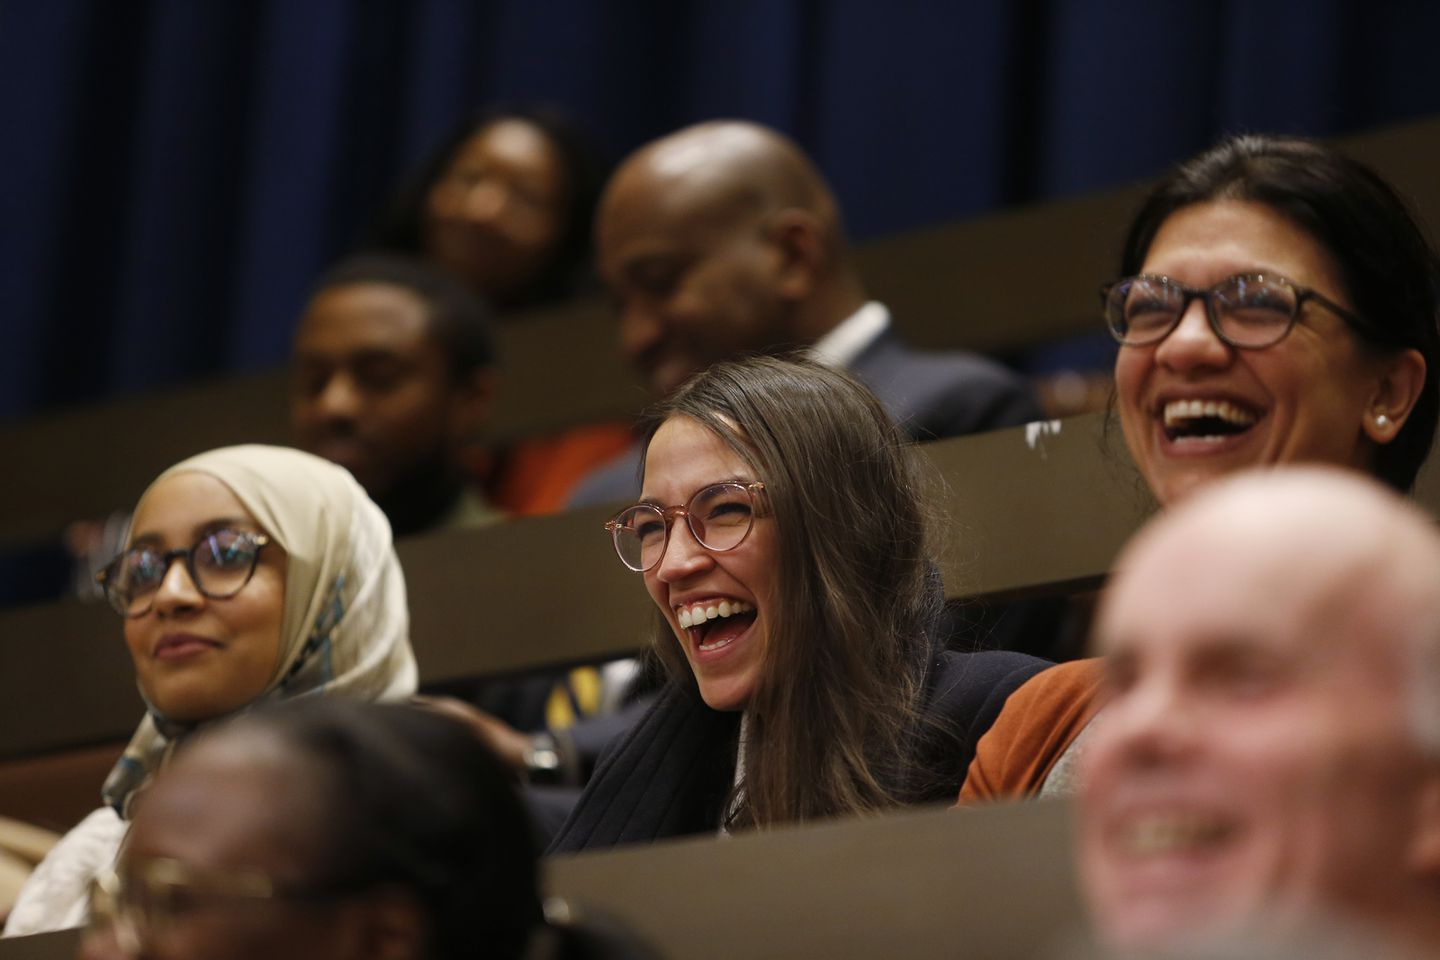 Fellow congresswomen-elect Alexandria Ocasio-Cortez (C) and Rashida Tlaib (R) laughed as other City Councilors referenced them in their farewell speech to Ayanna Pressley at City Hall.